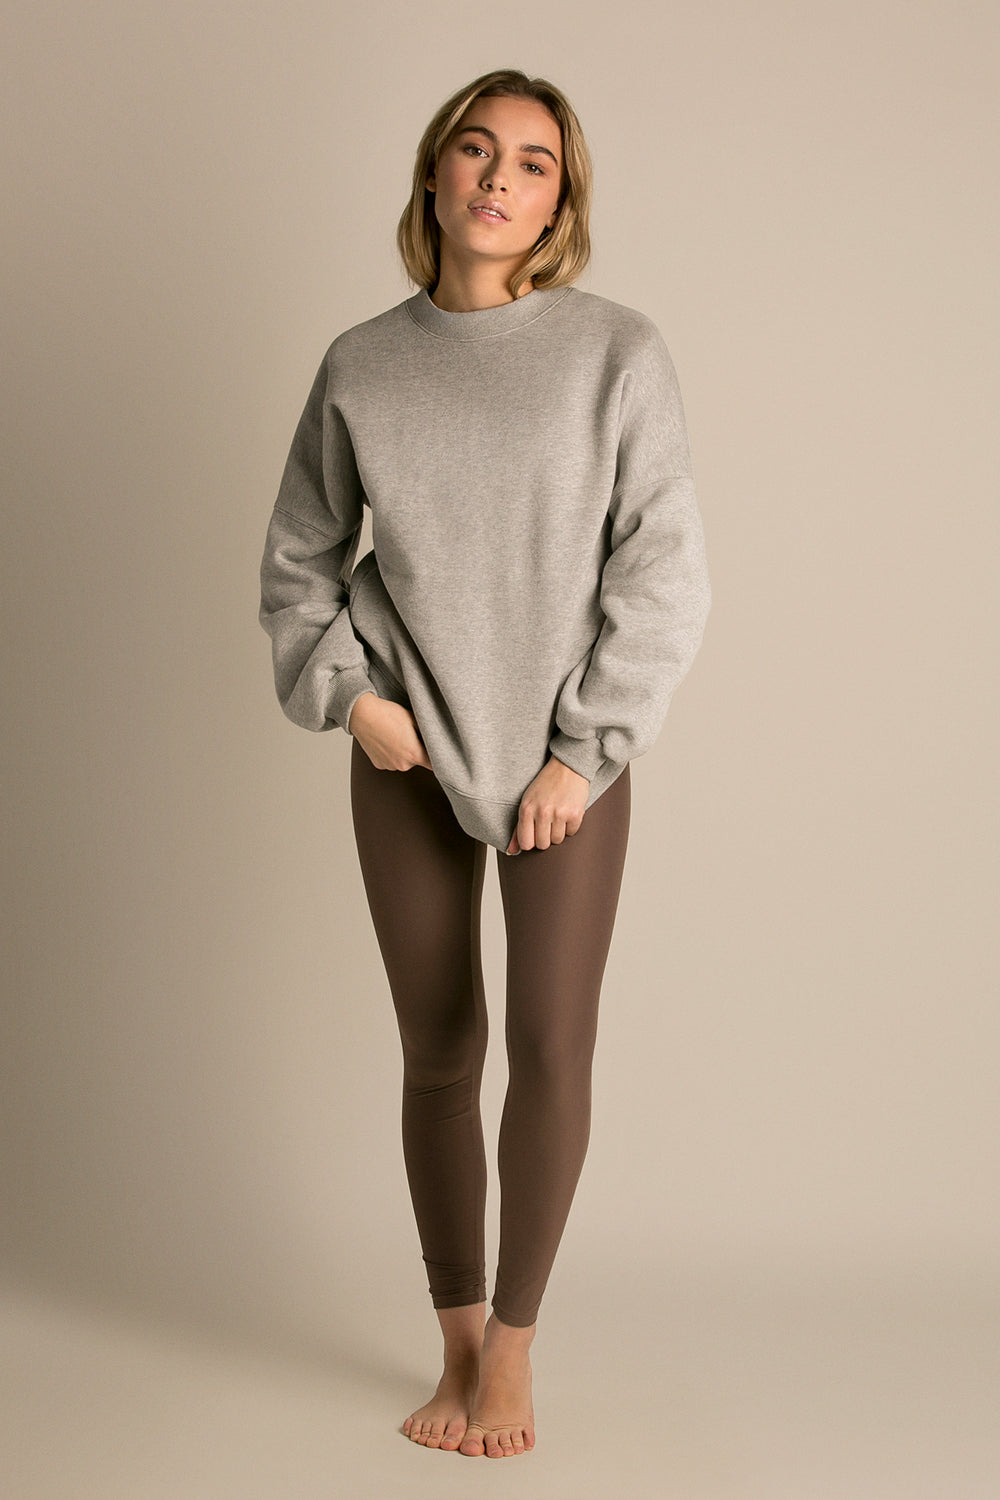 Lazy Sunday Sweatshirt - Fleece Stone